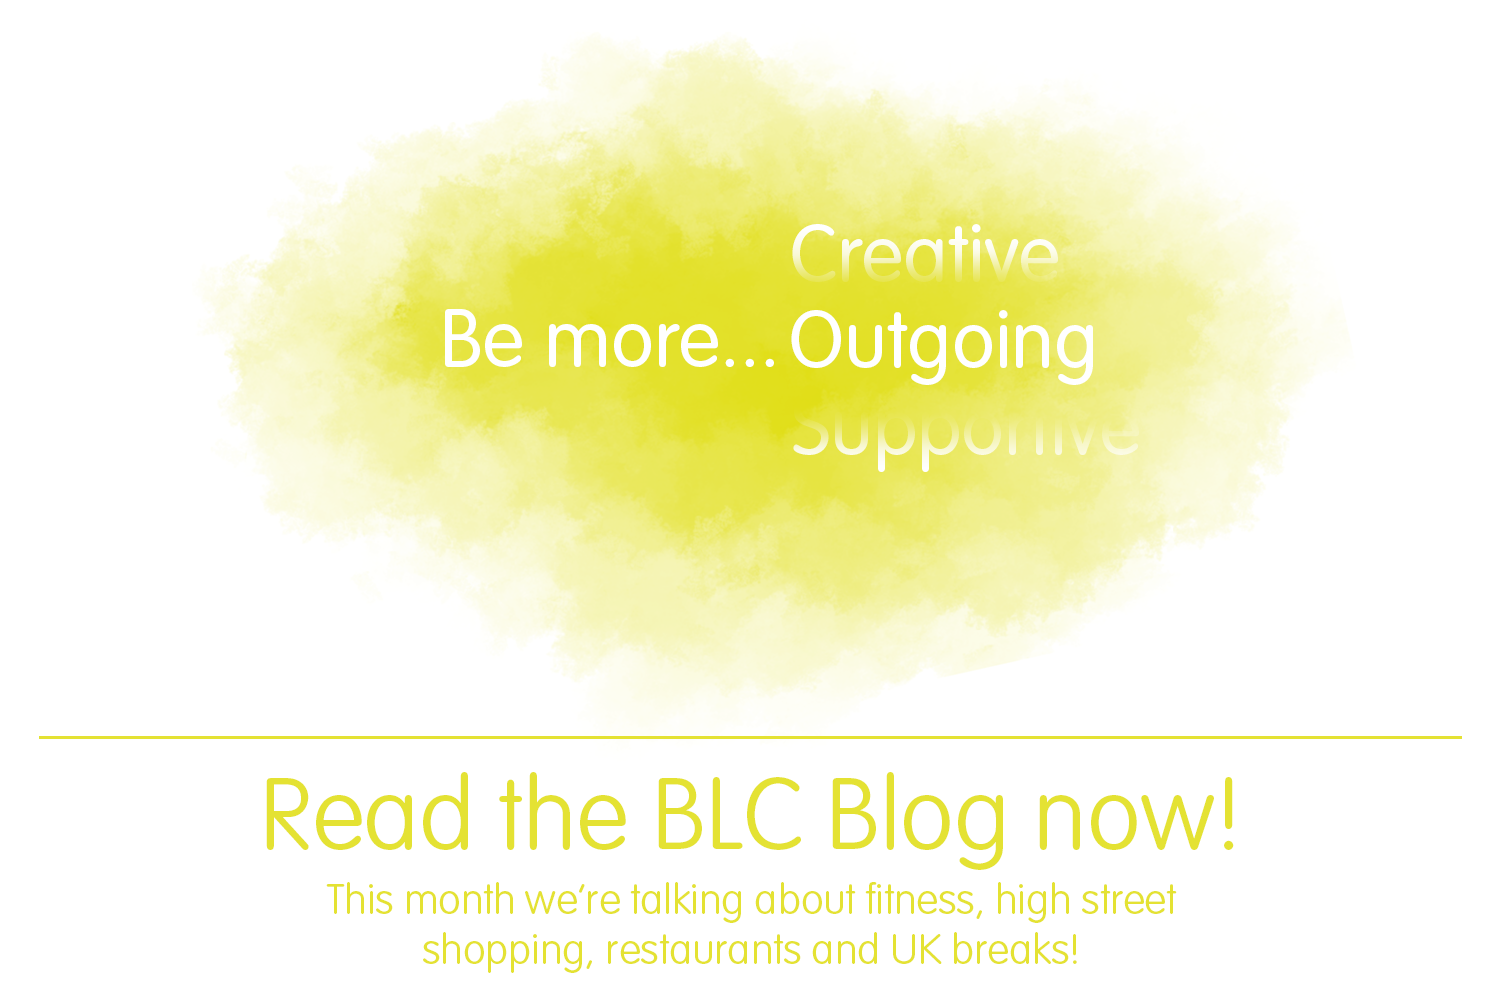 BLC Blog - Be more... Outgoing!>